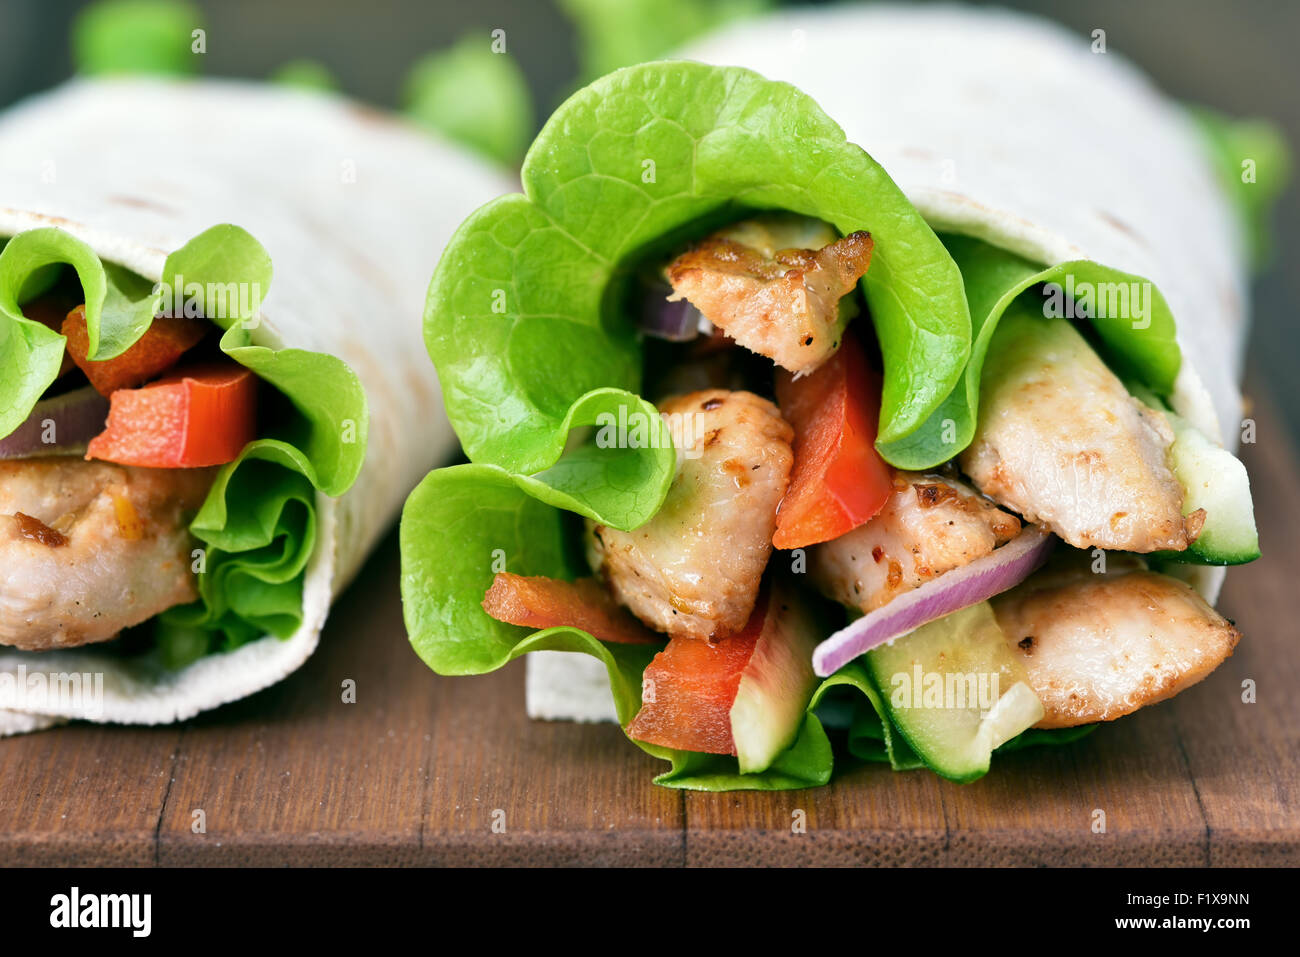 Tortilla wraps on wooden table, close up view - Stock Image